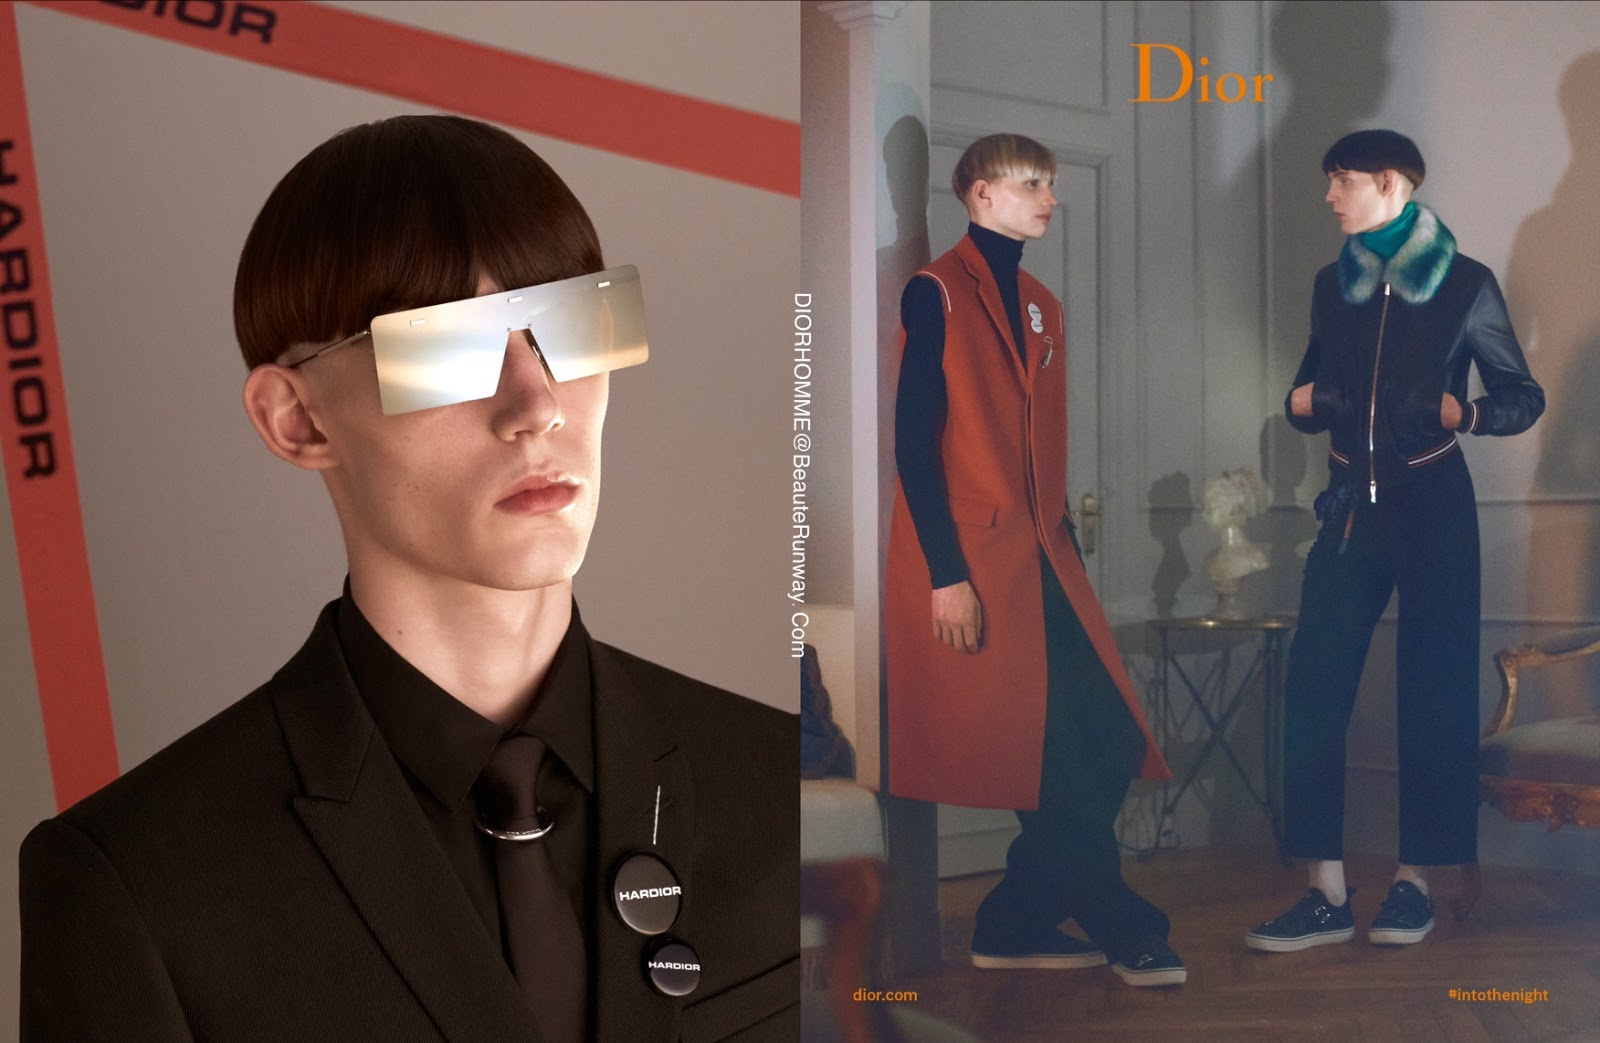 041fb8d9bb HarDior sunglasses delicate silver-tone metal structure with openwork  temples matt black lacquered endtips with Dior Homme cut creates lightness  while the ...